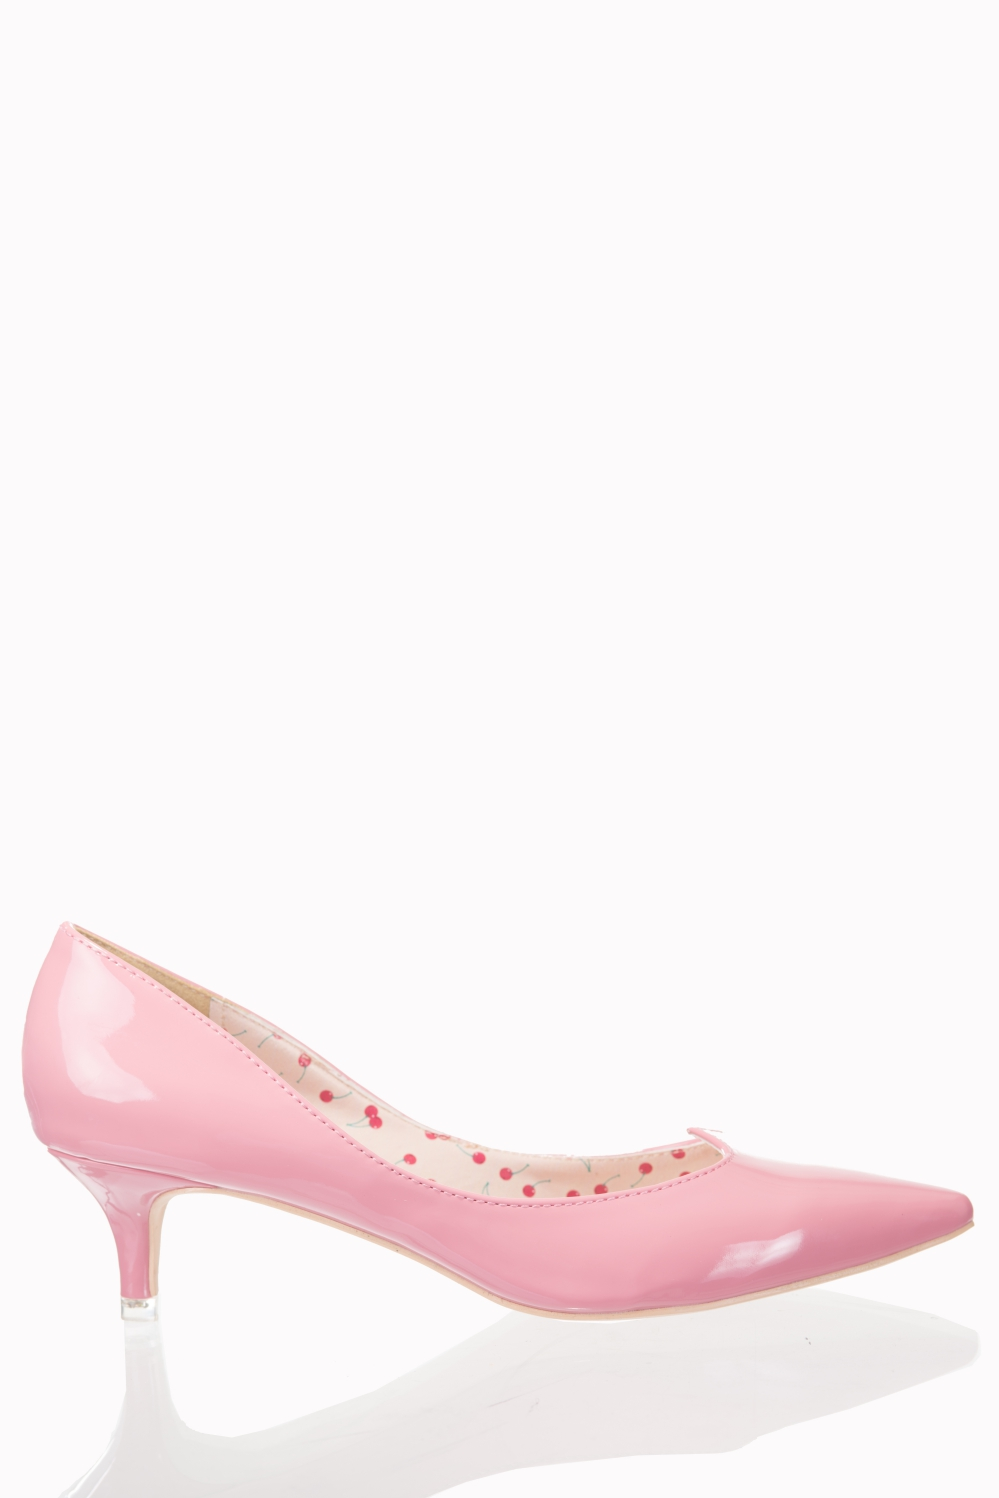 Dancing Days By Banned 1940s Pink Kitten Heels